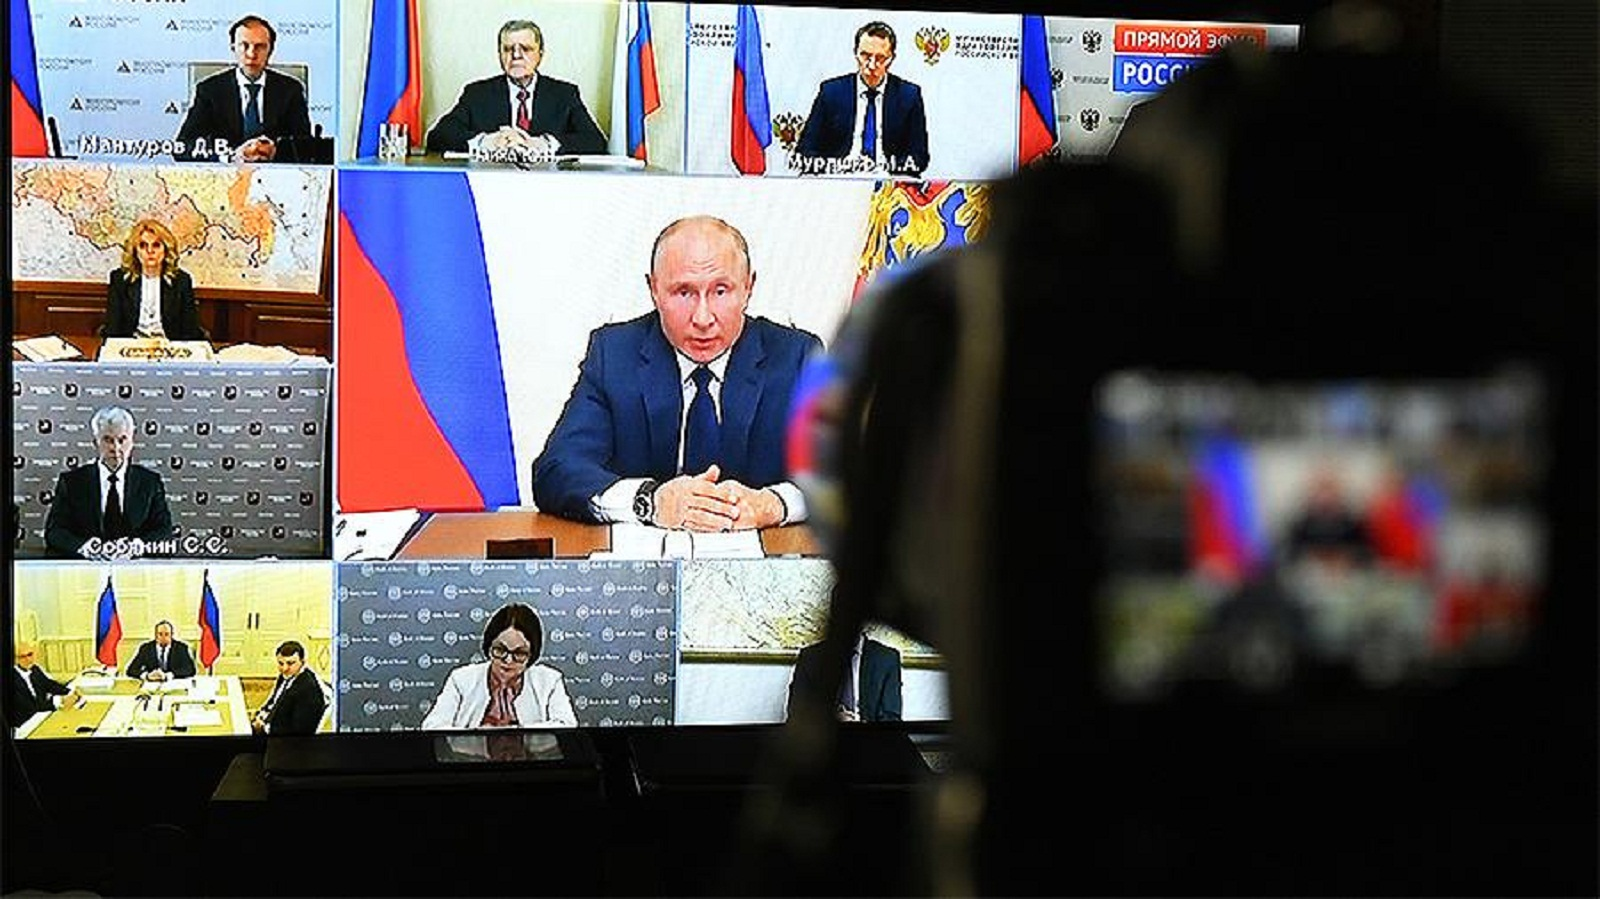 On Monday, May 11, Russians President Vladimir Putin made an address to the country's residents,